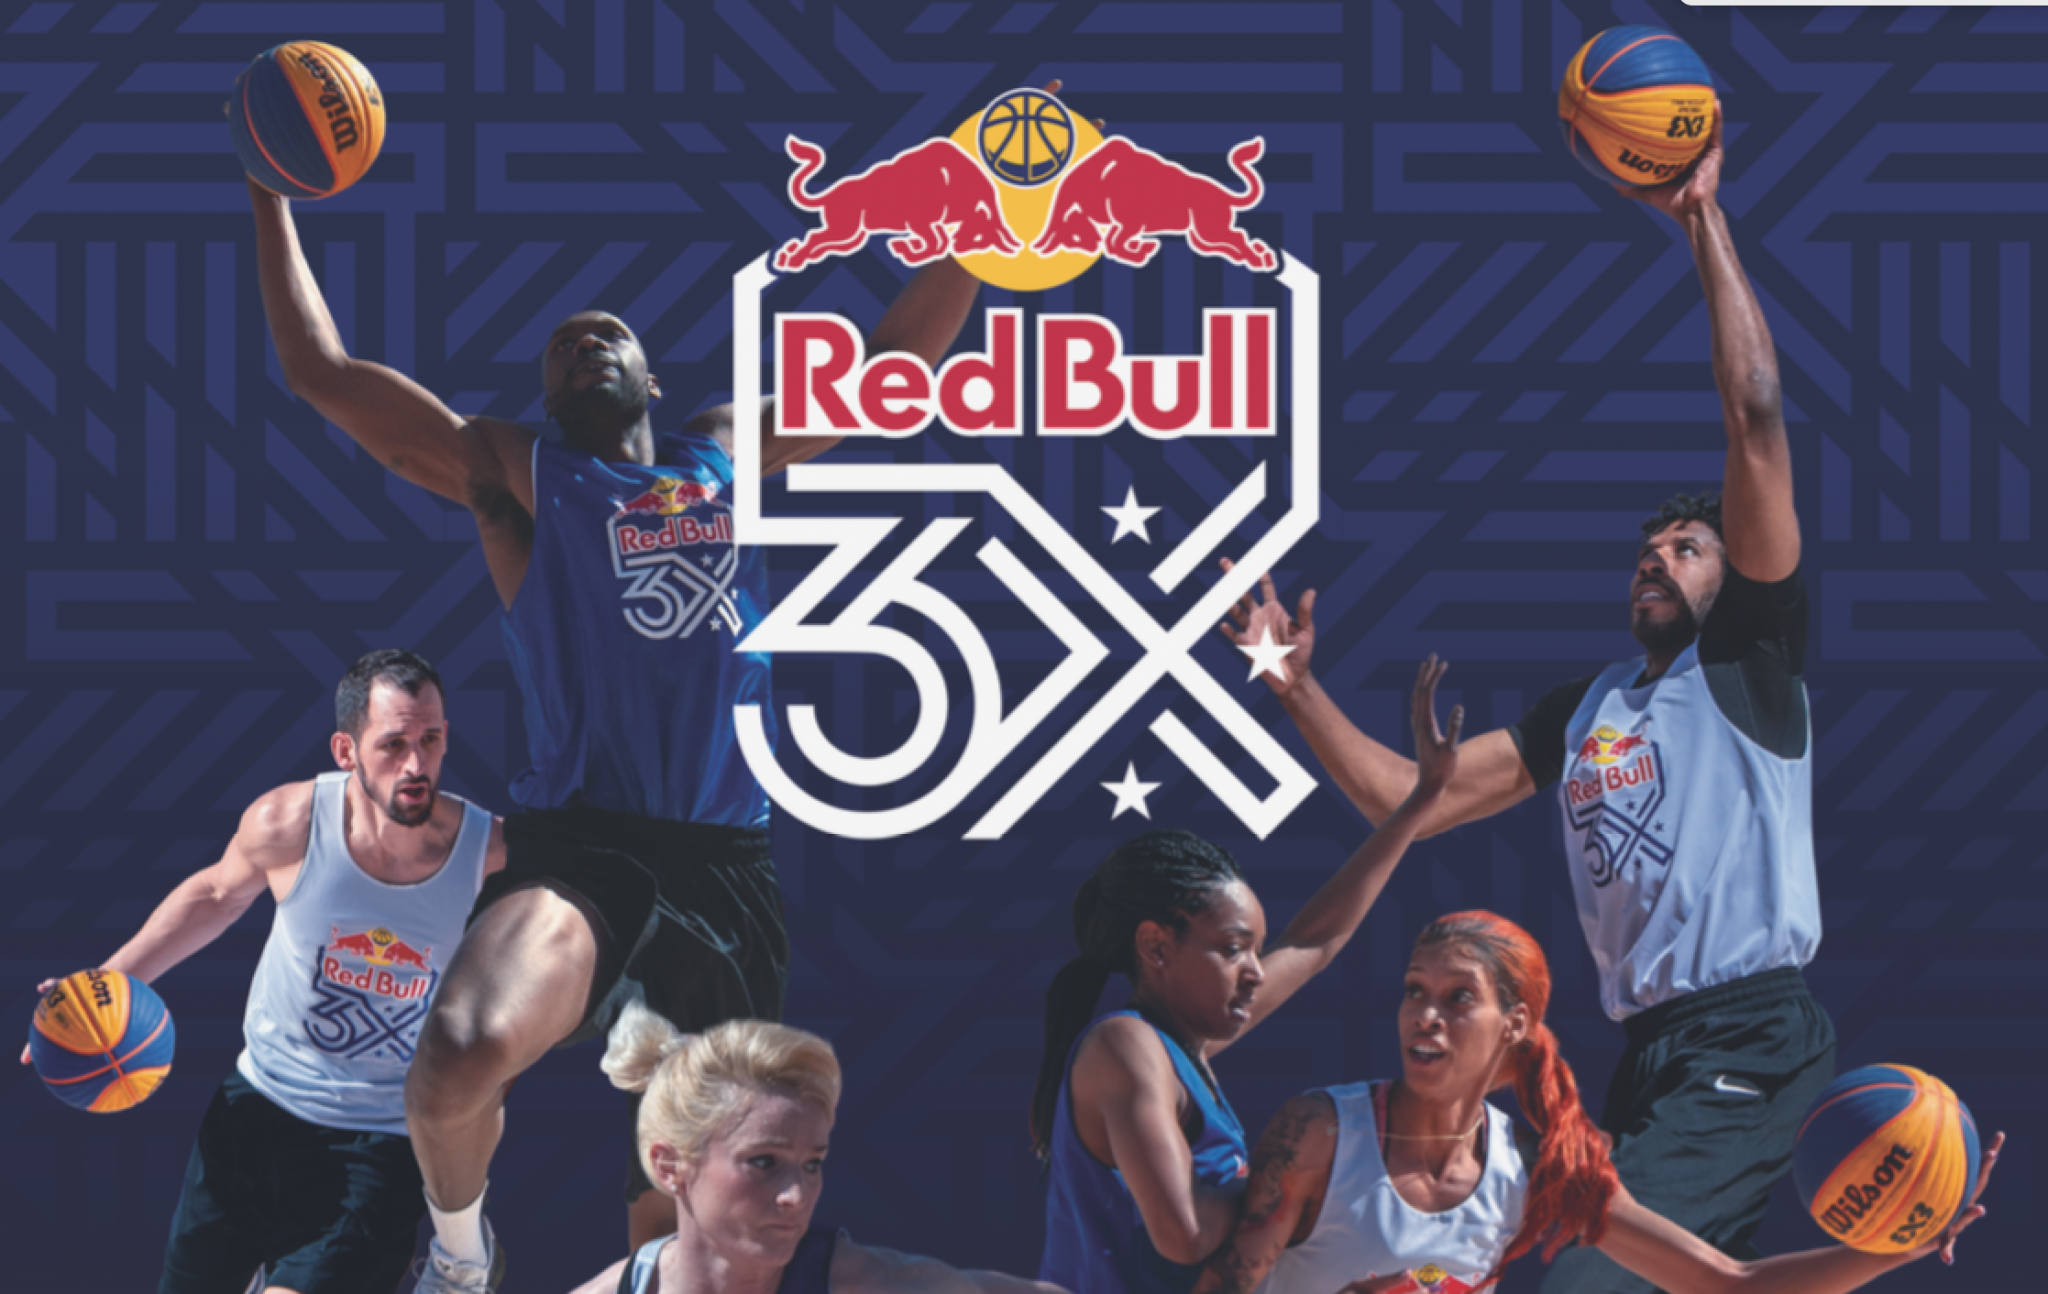 Redbull 3×3 x USA Basketball coming to the Beach